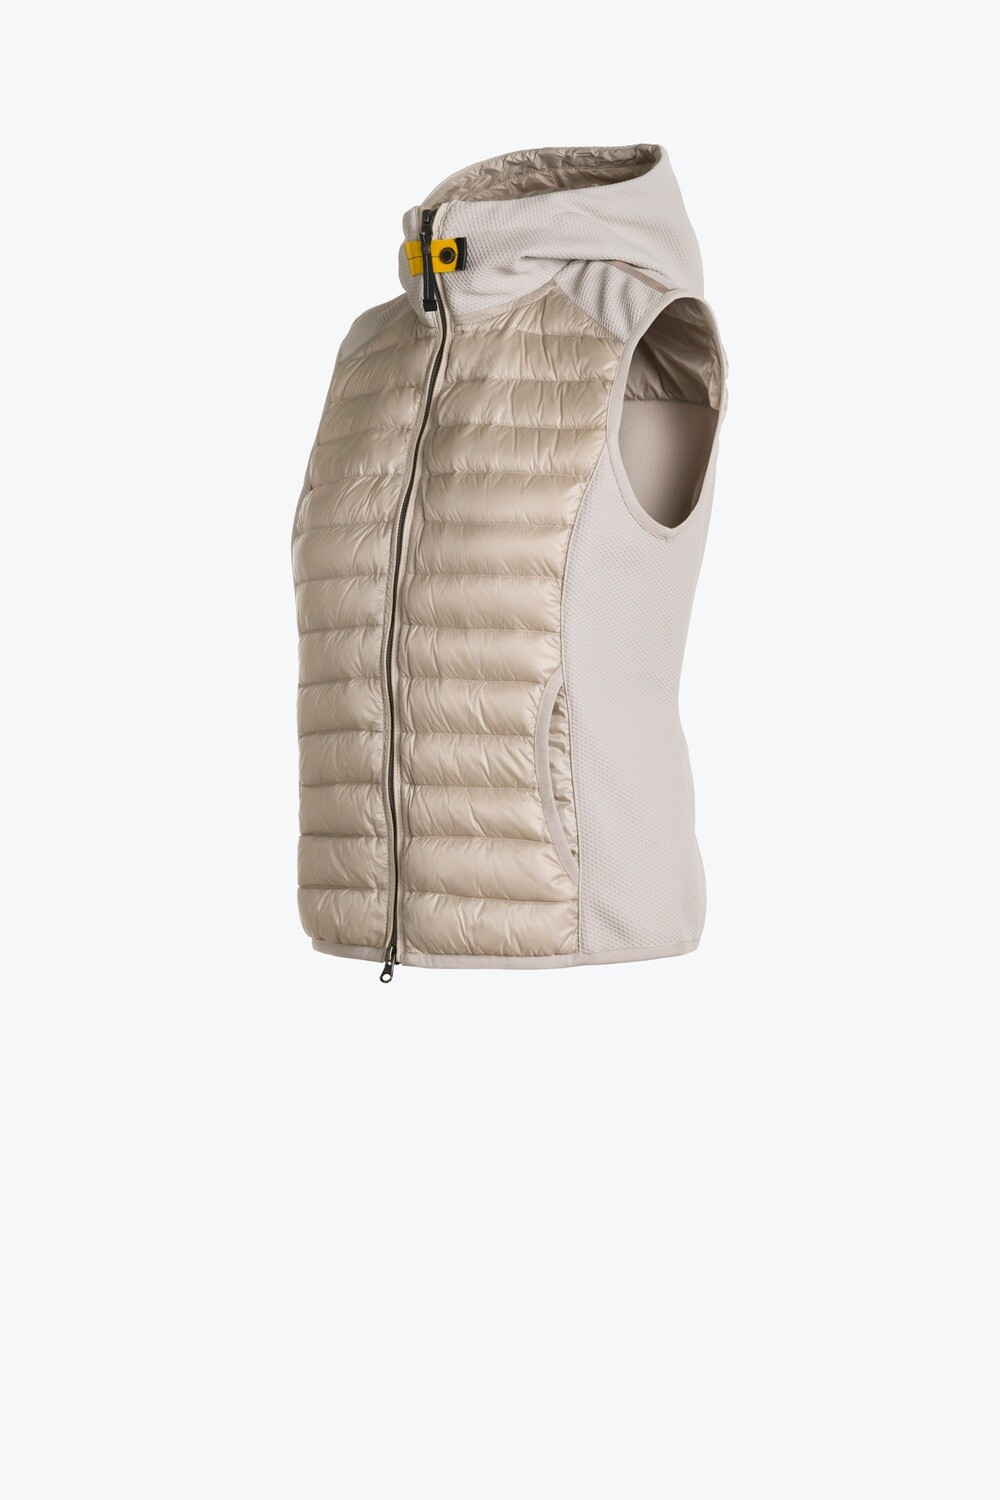 Parajumpers, Nikky, Silver Grey